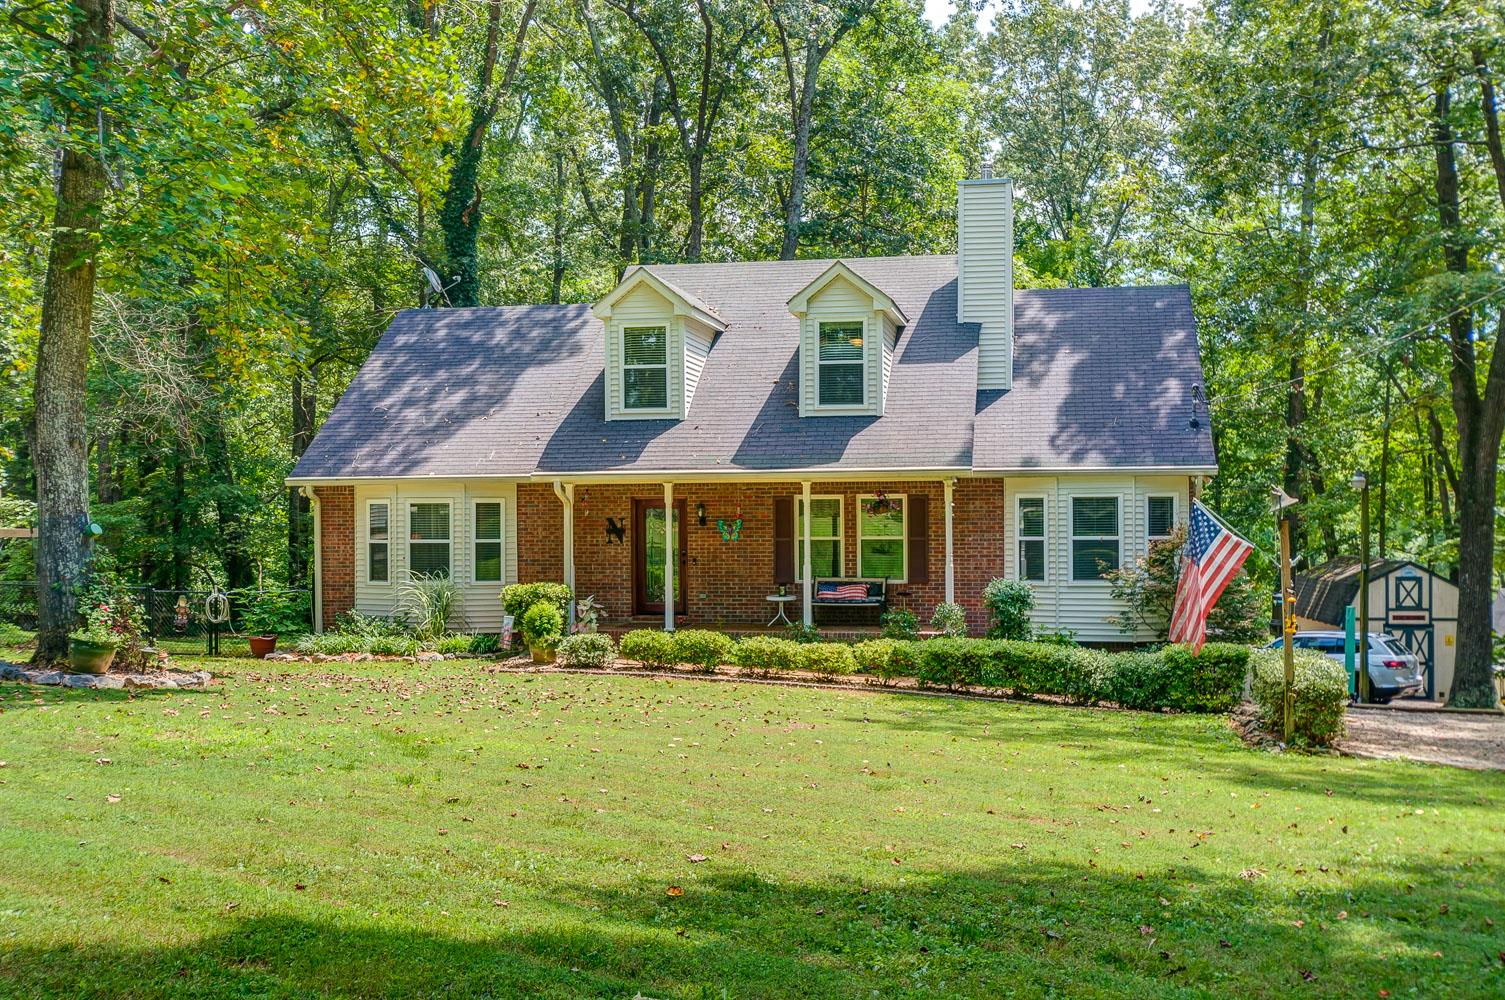 5091 Campbell Rd, Cross Plains, TN 37049 - Cross Plains, TN real estate listing